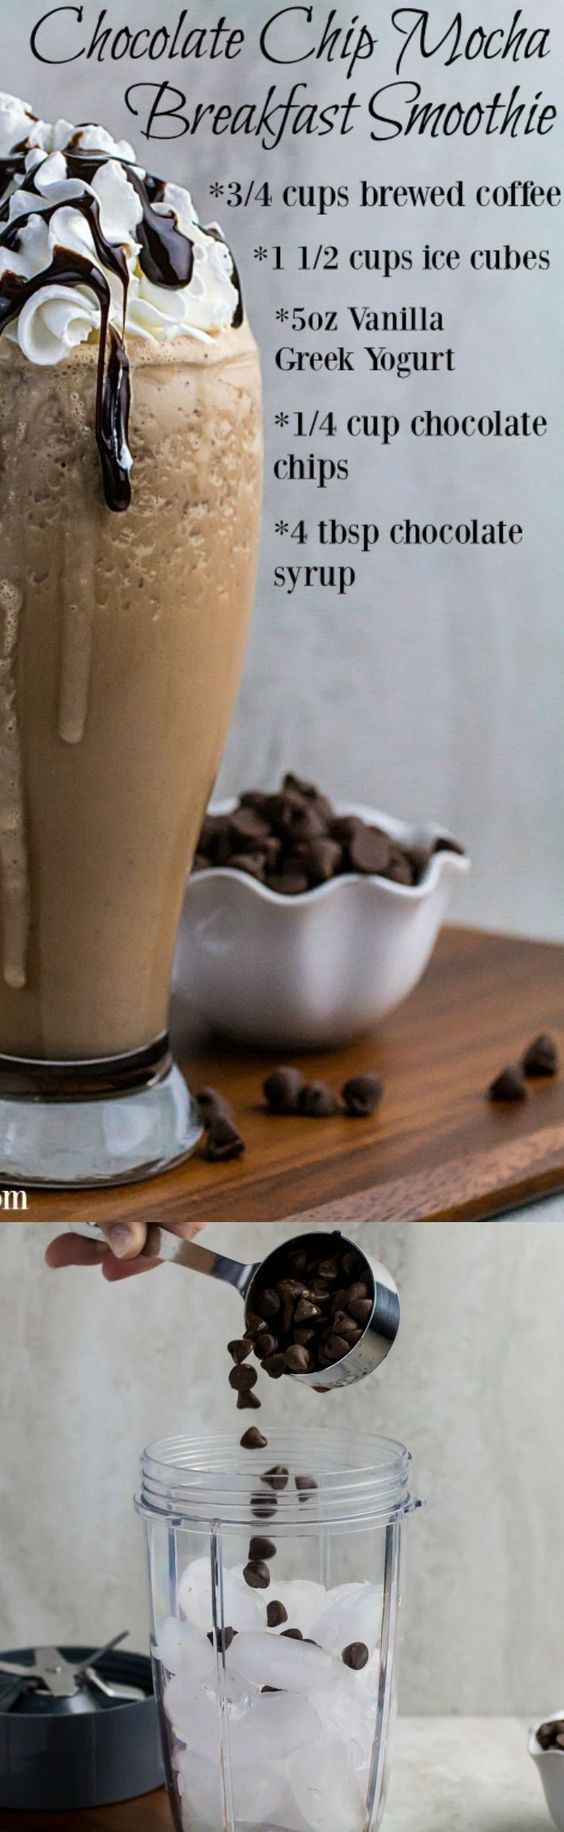 Creamy vanilla greek yogurt sweet chocolate chips and ice combined with bold coffee to create the perfect Chocolate Chip Mocha Breakfast Smoothie. It's healthy protein and sweet sweet caffeine rolled all into one tasty morning treat. This is seriously the easiest breakfast you'll make all week! Gluten free!